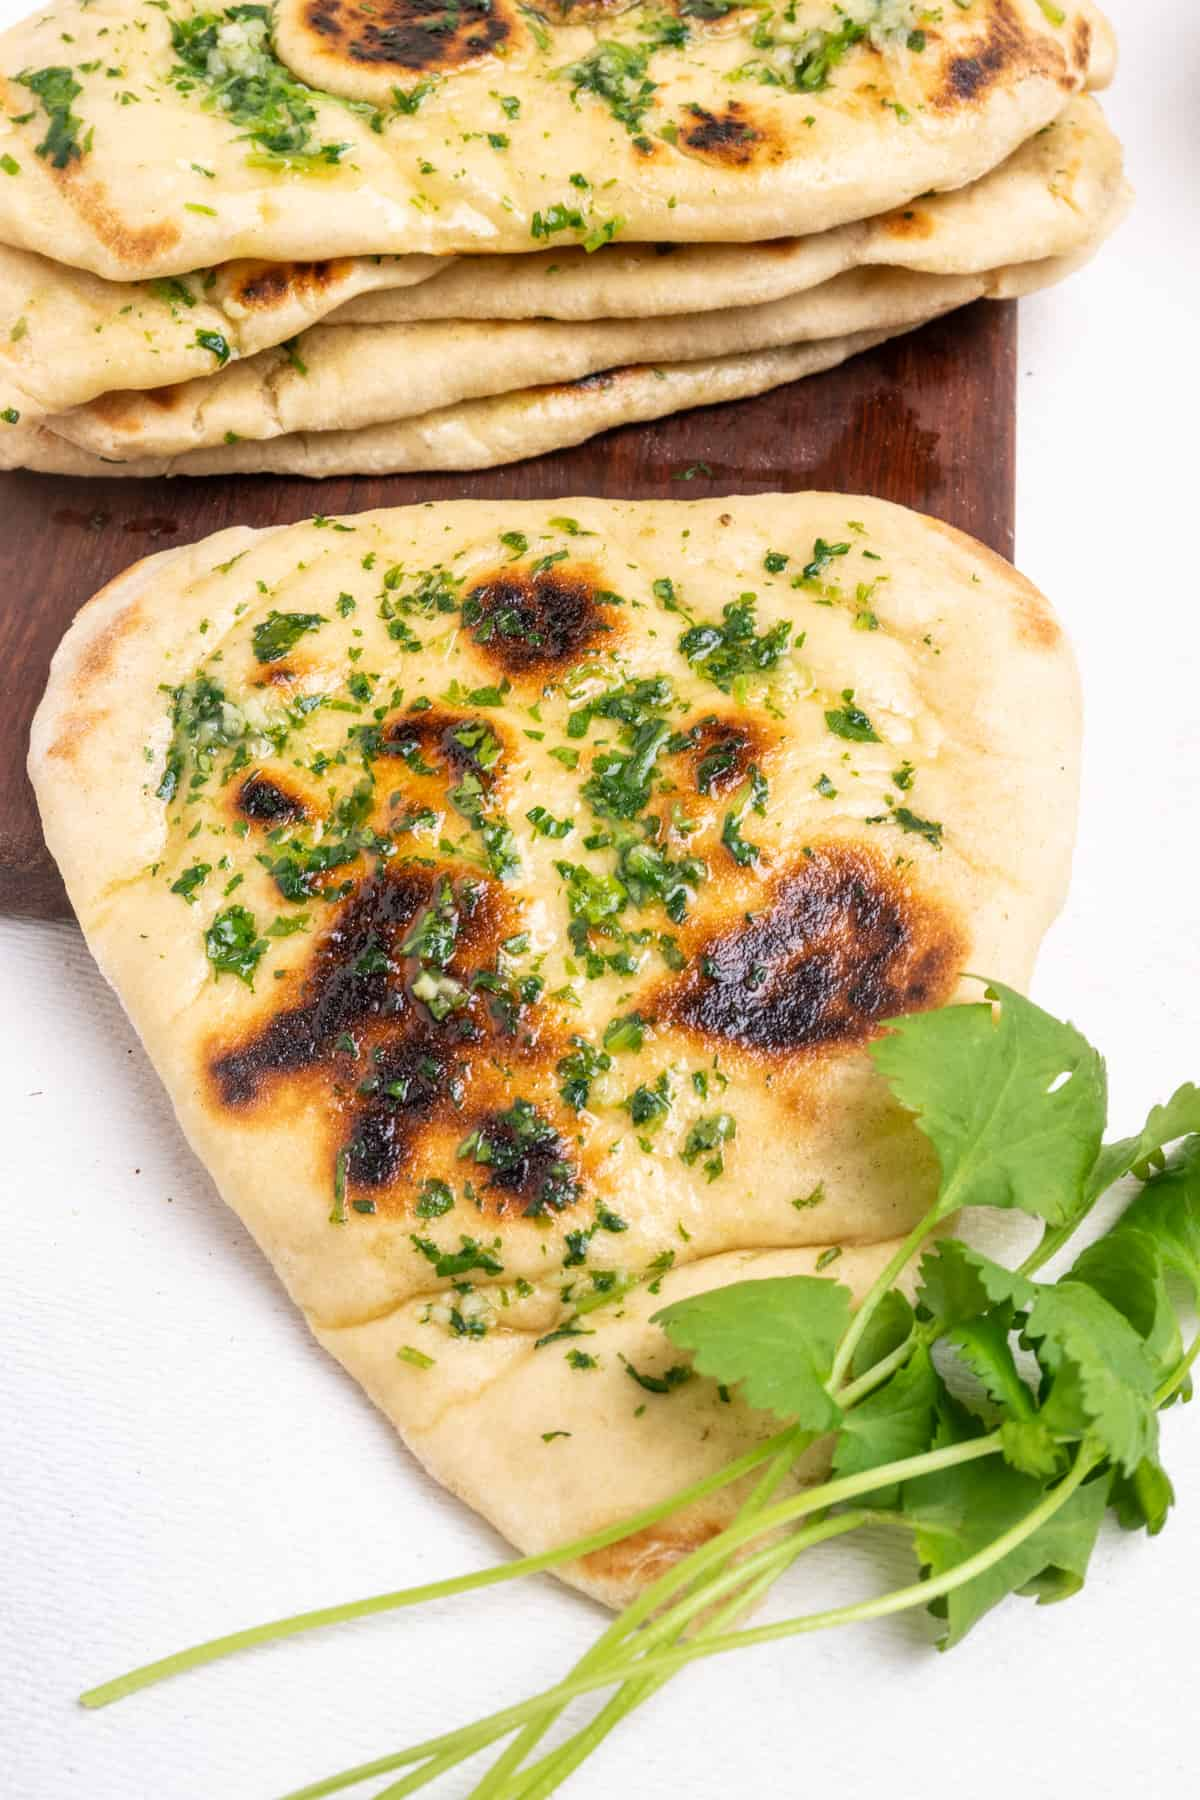 A naan bread with some fresh coriander greens, next to a stack of more flat breads.